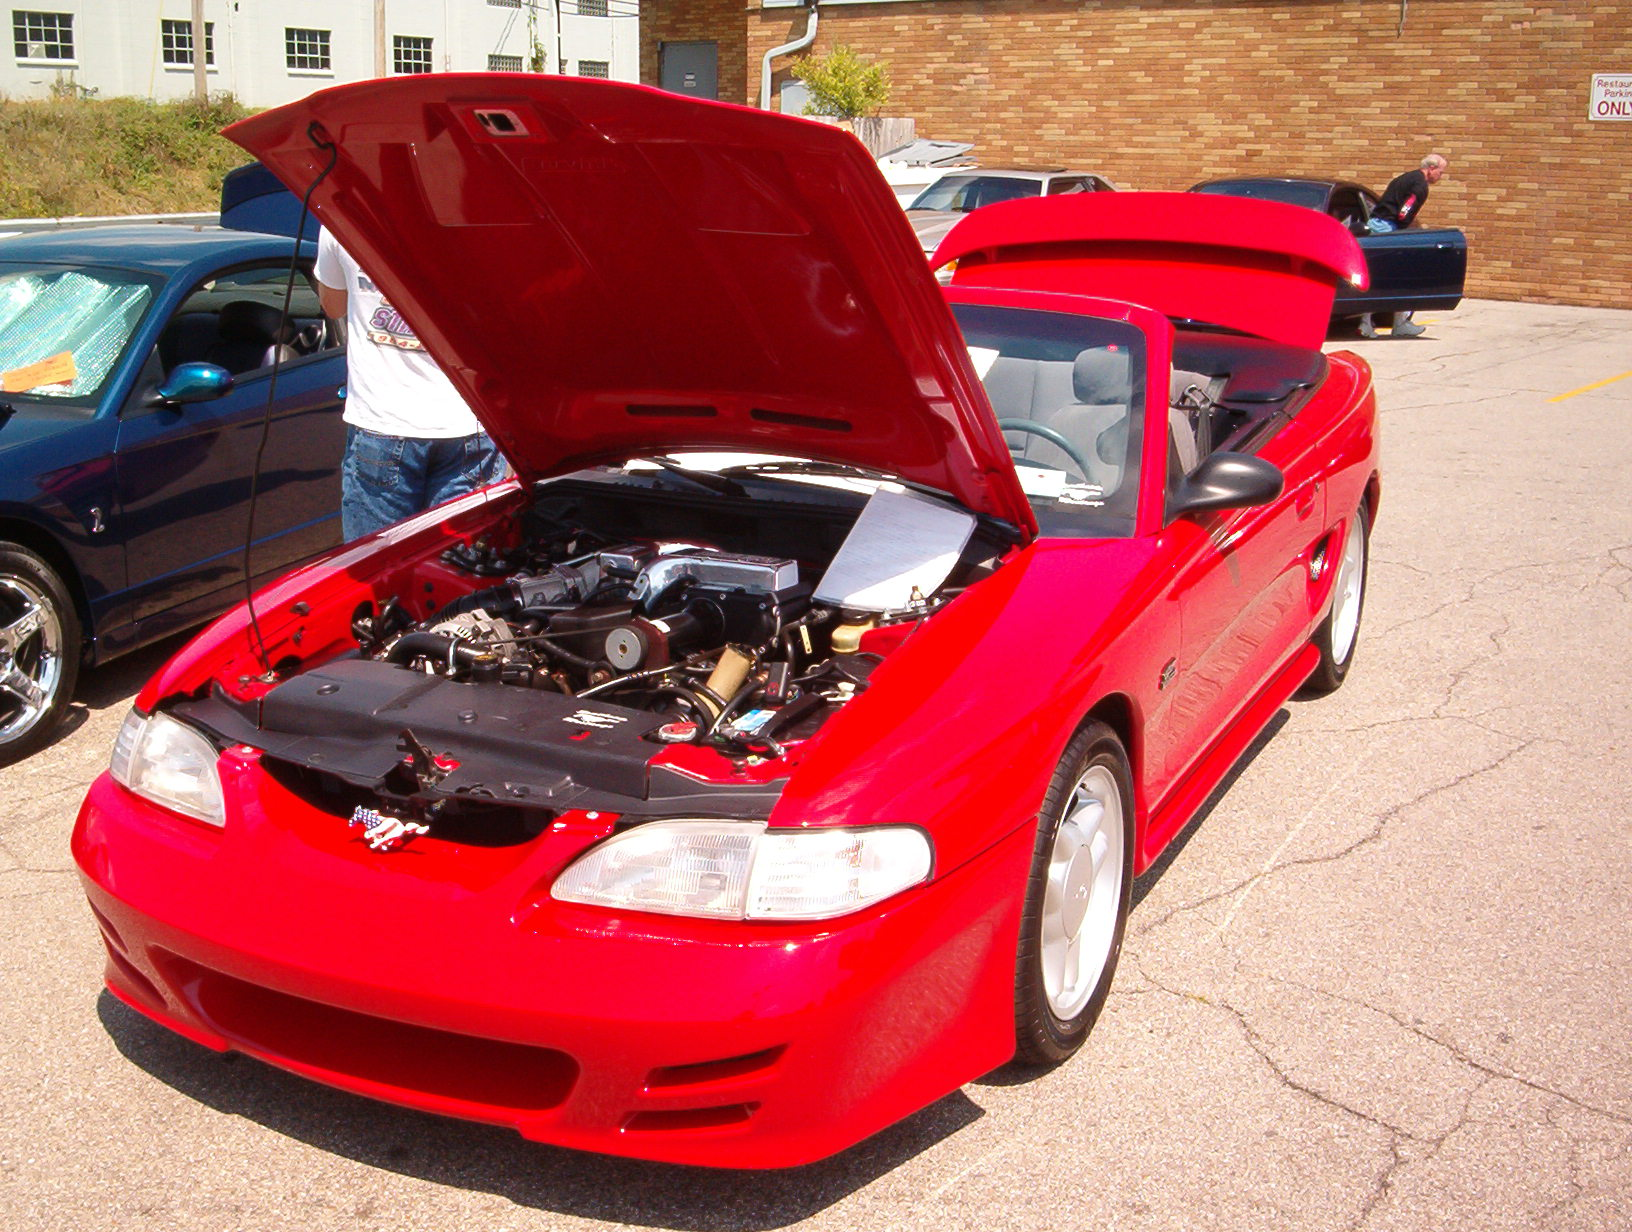 Click image for larger version  Name:8-21-04 car show 017.jpg Views:61 Size:447.2 KB ID:9665